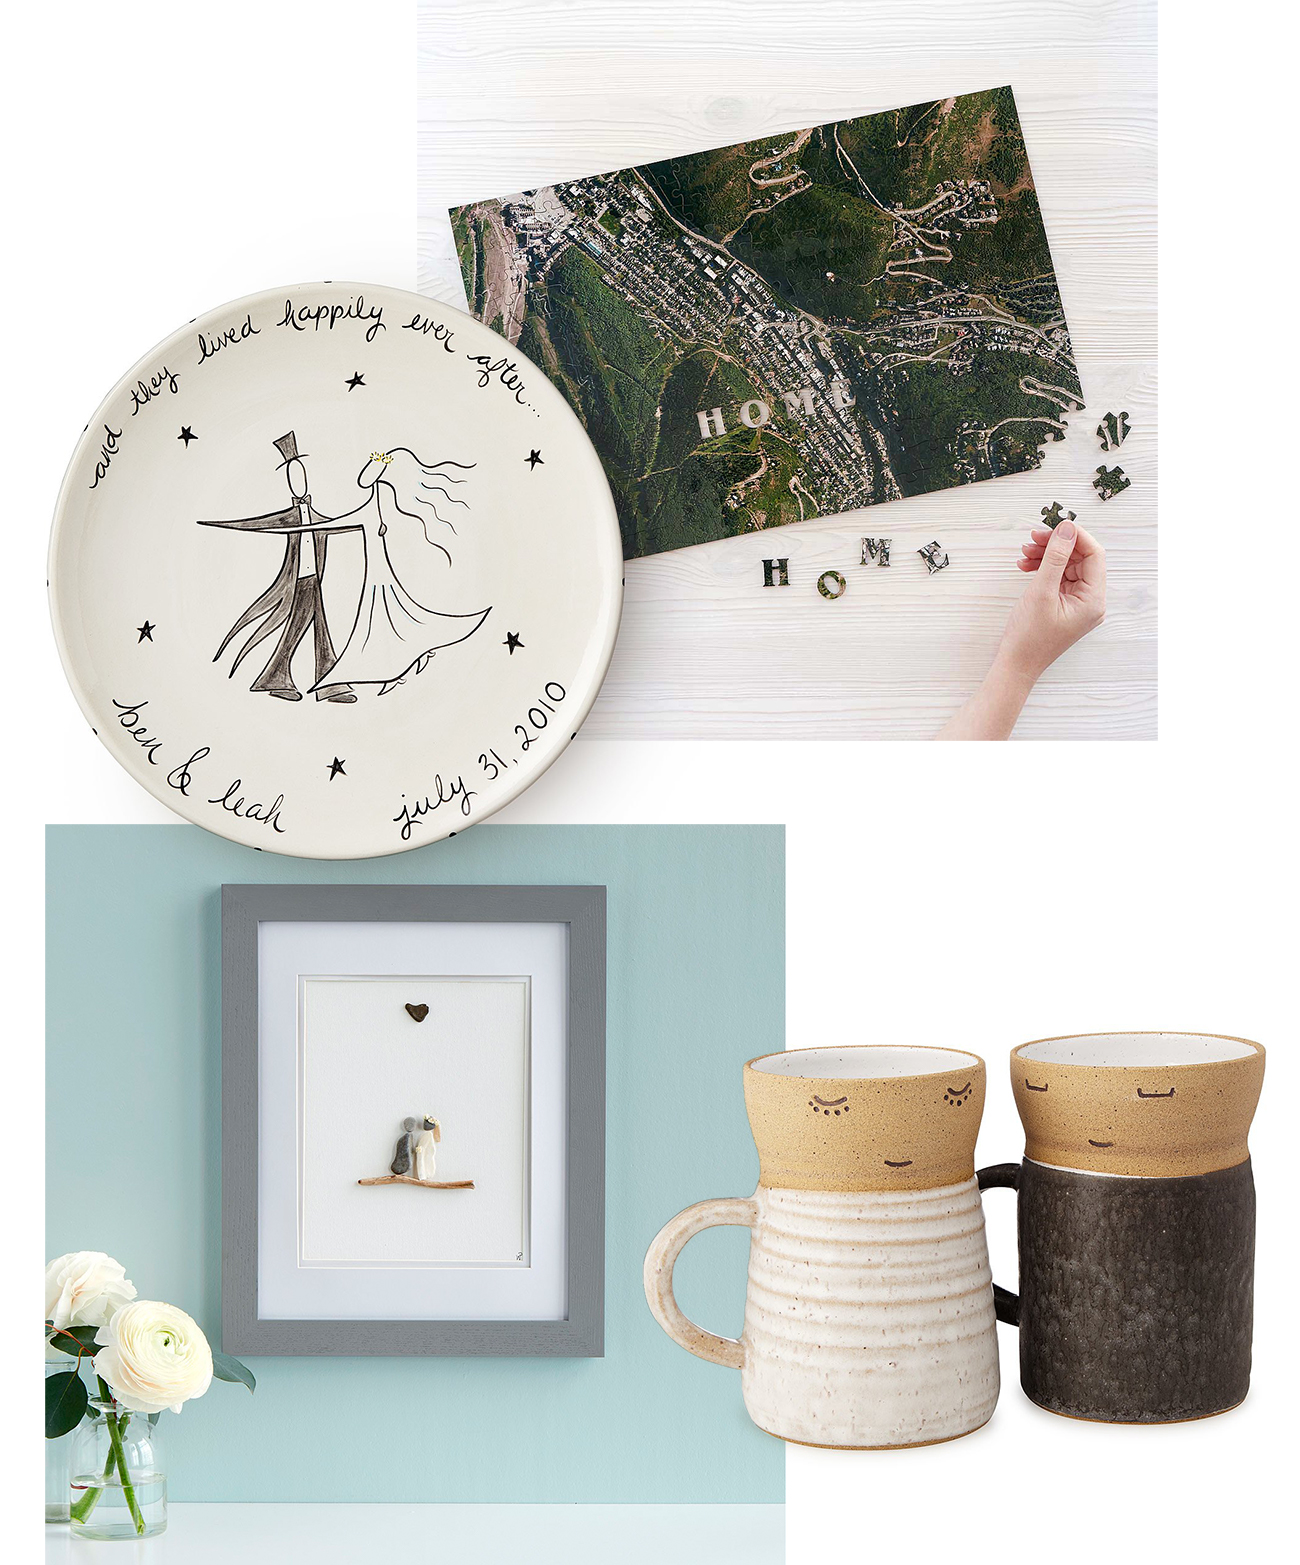 Wedding Gifts For Couple.13 Lovable Wedding Gifts For Uncommon Couples The Goods